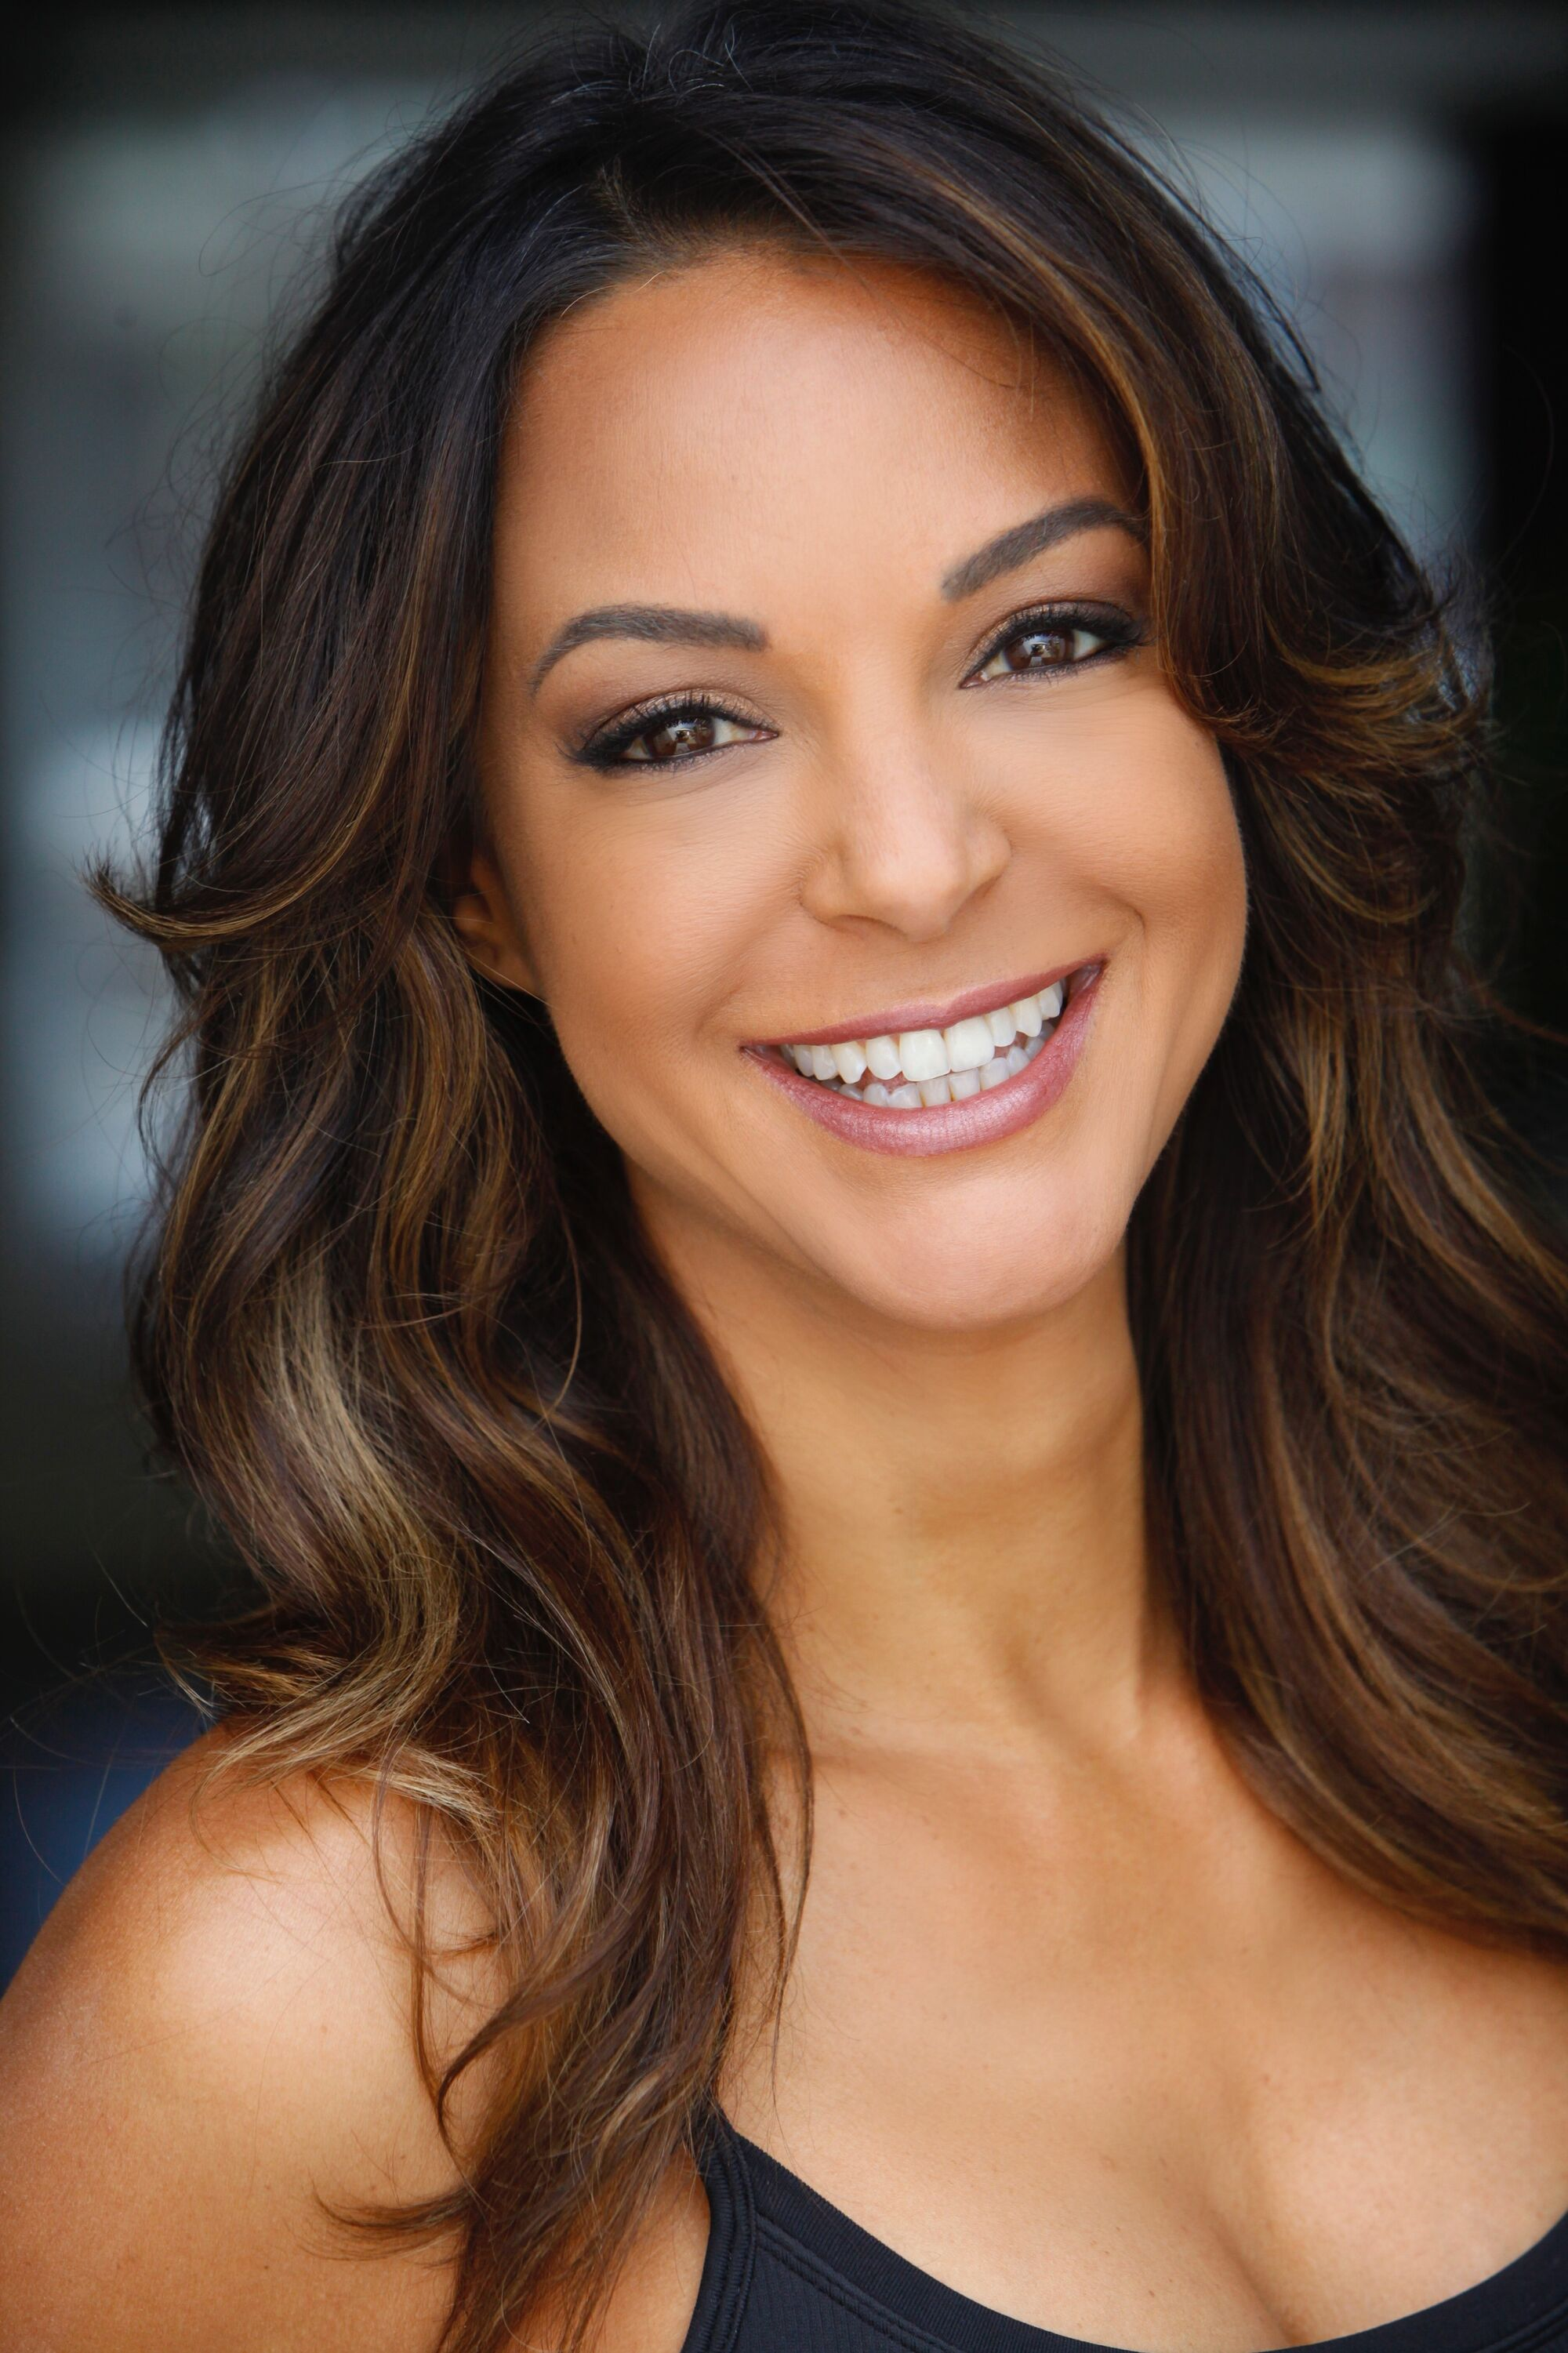 Celeste Rosales | The Young and the Restless Wiki | Fandom